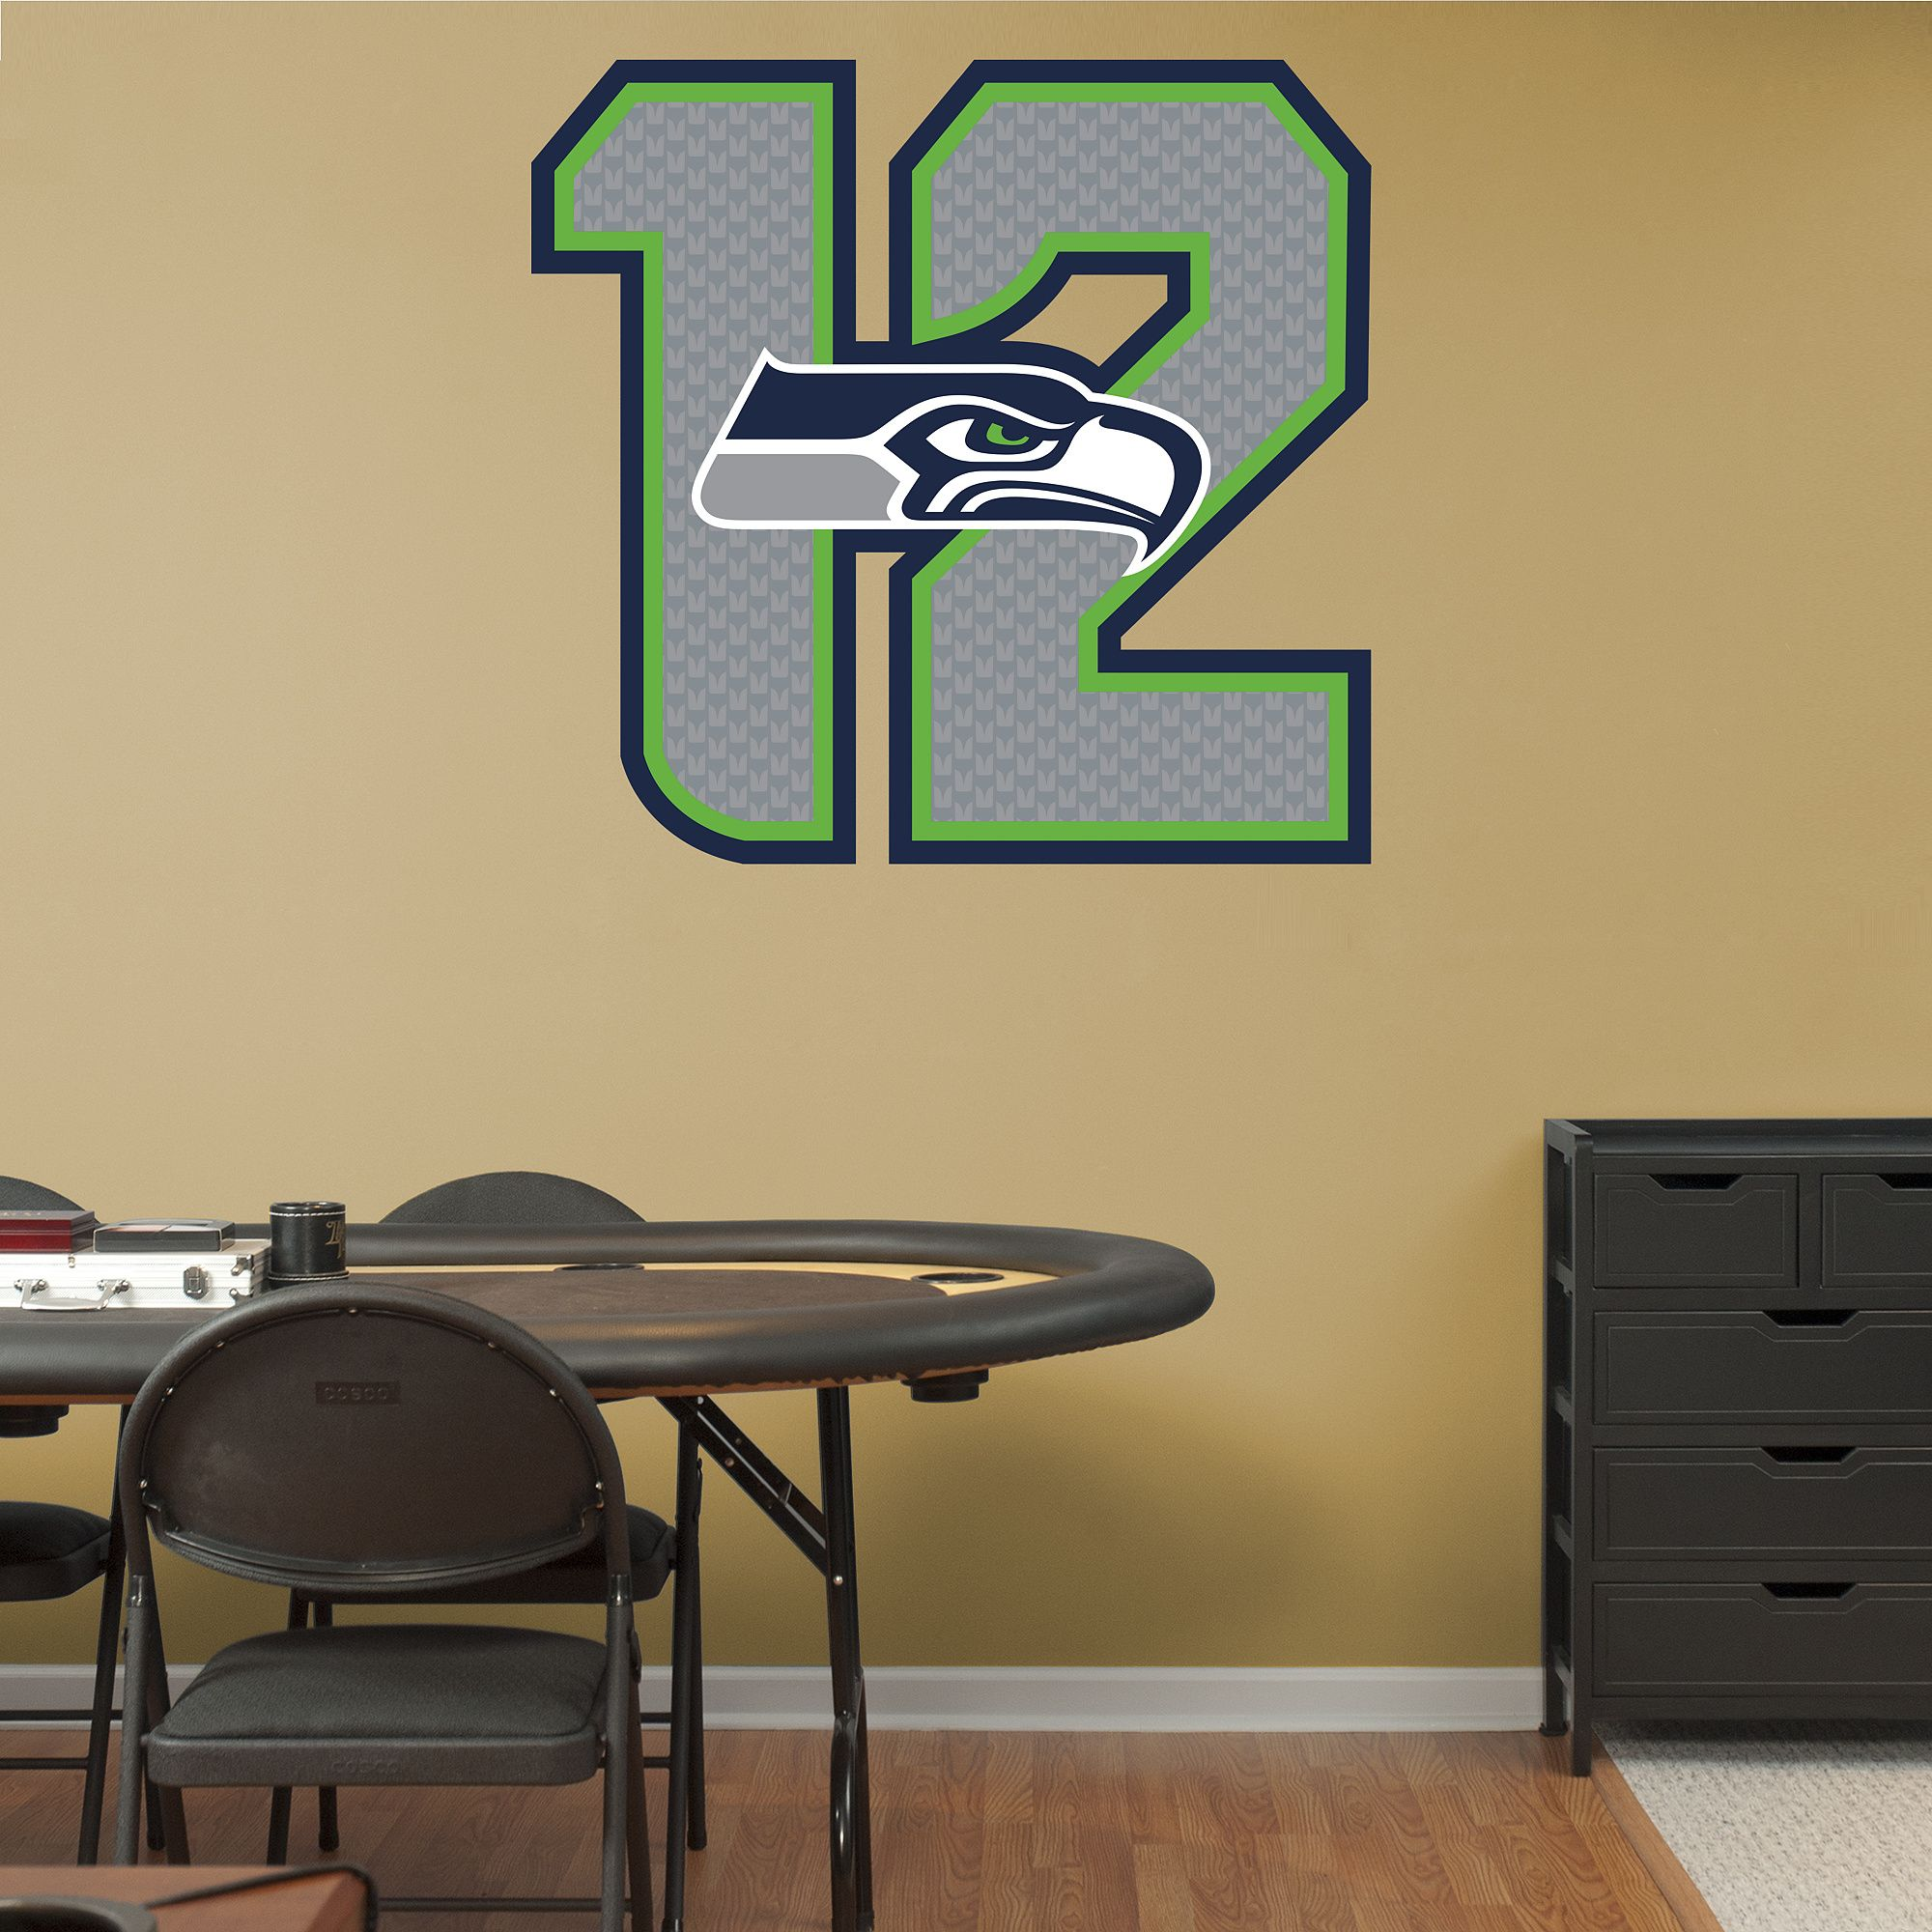 Seattle Seahawks 12 Logo | Seahawks, Seattle and Wall decals